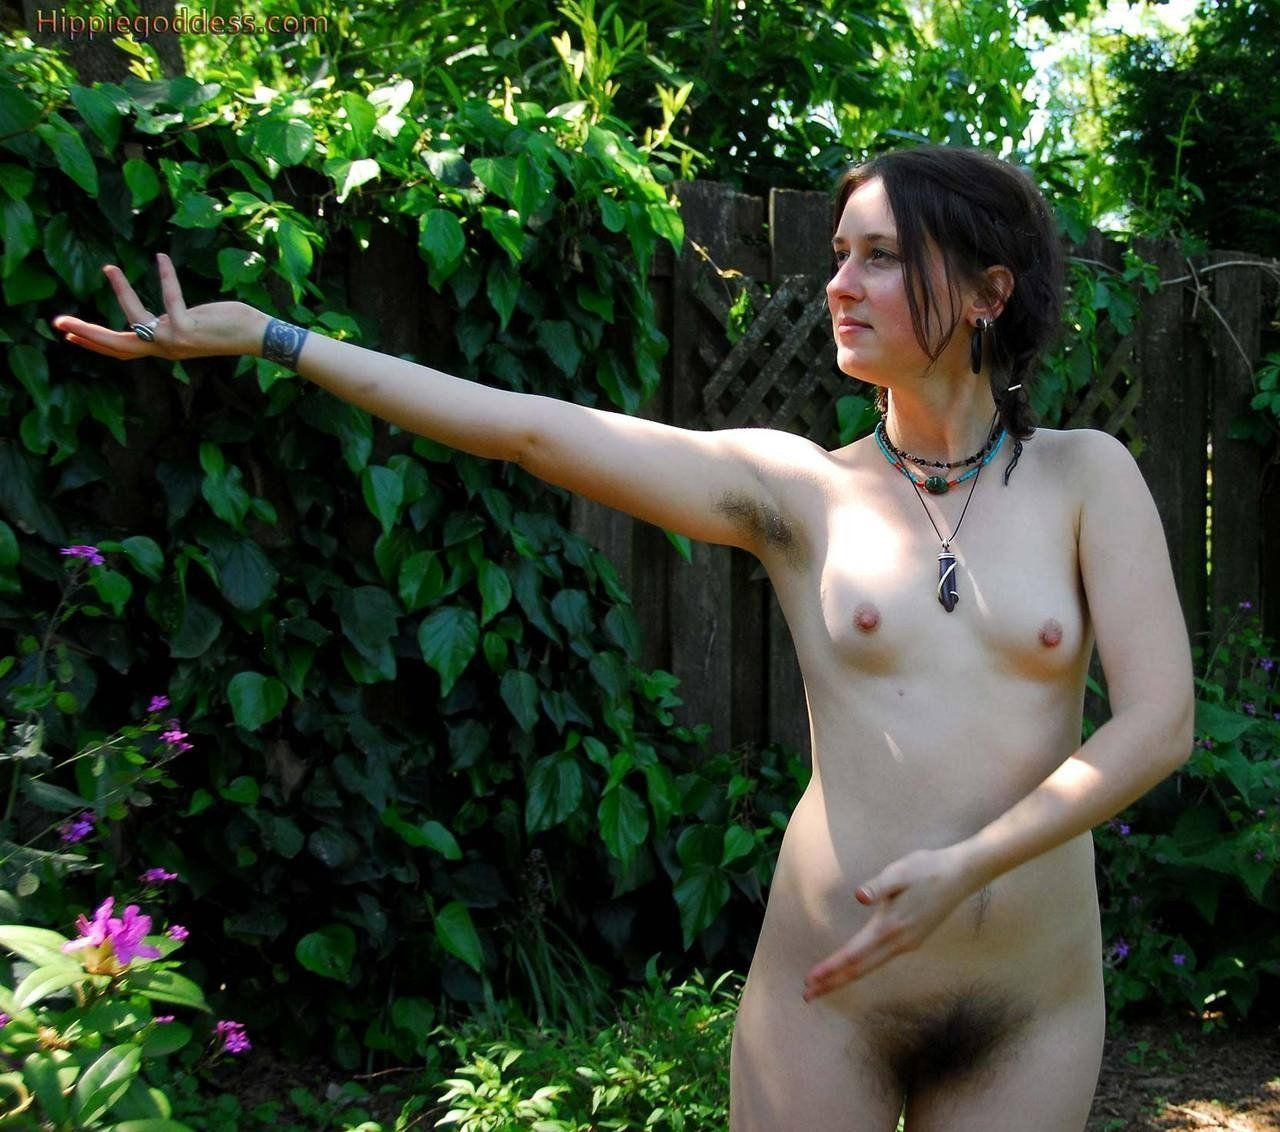 Hairy hippy cunt gallery